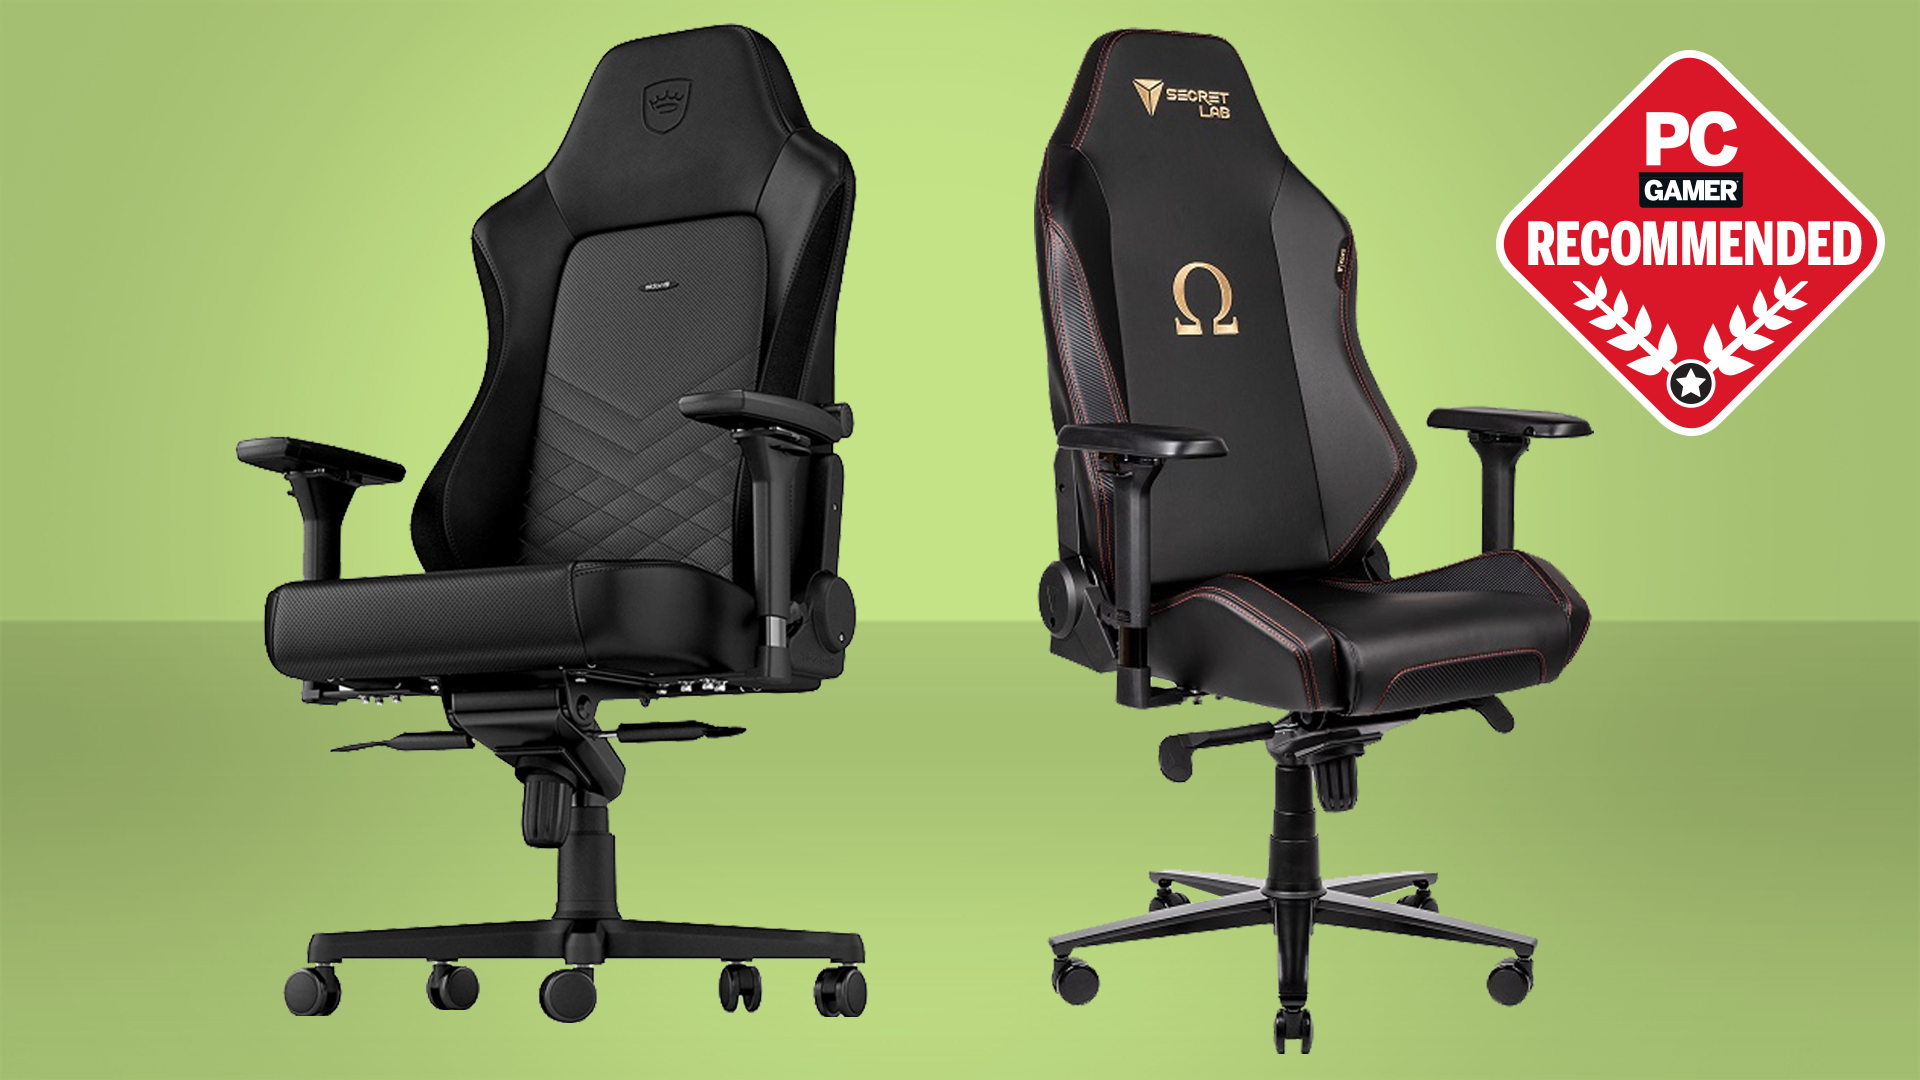 The Best Gaming Chairs 2019 Pc Gamer